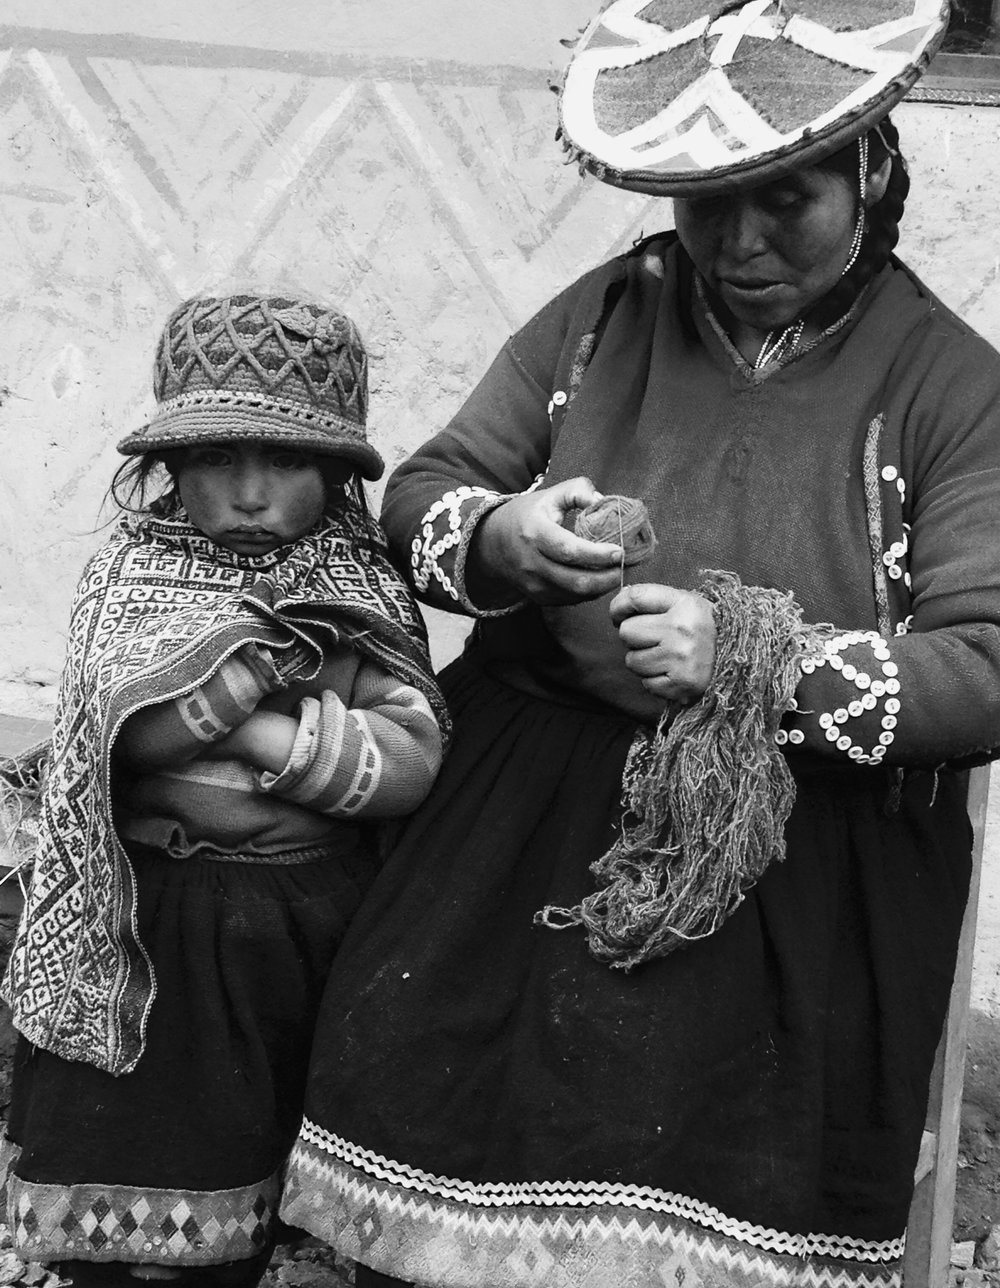 Weaving in Peru, 2014  Honorable Mention from the 2017 Scholastic Art & Writing Awards